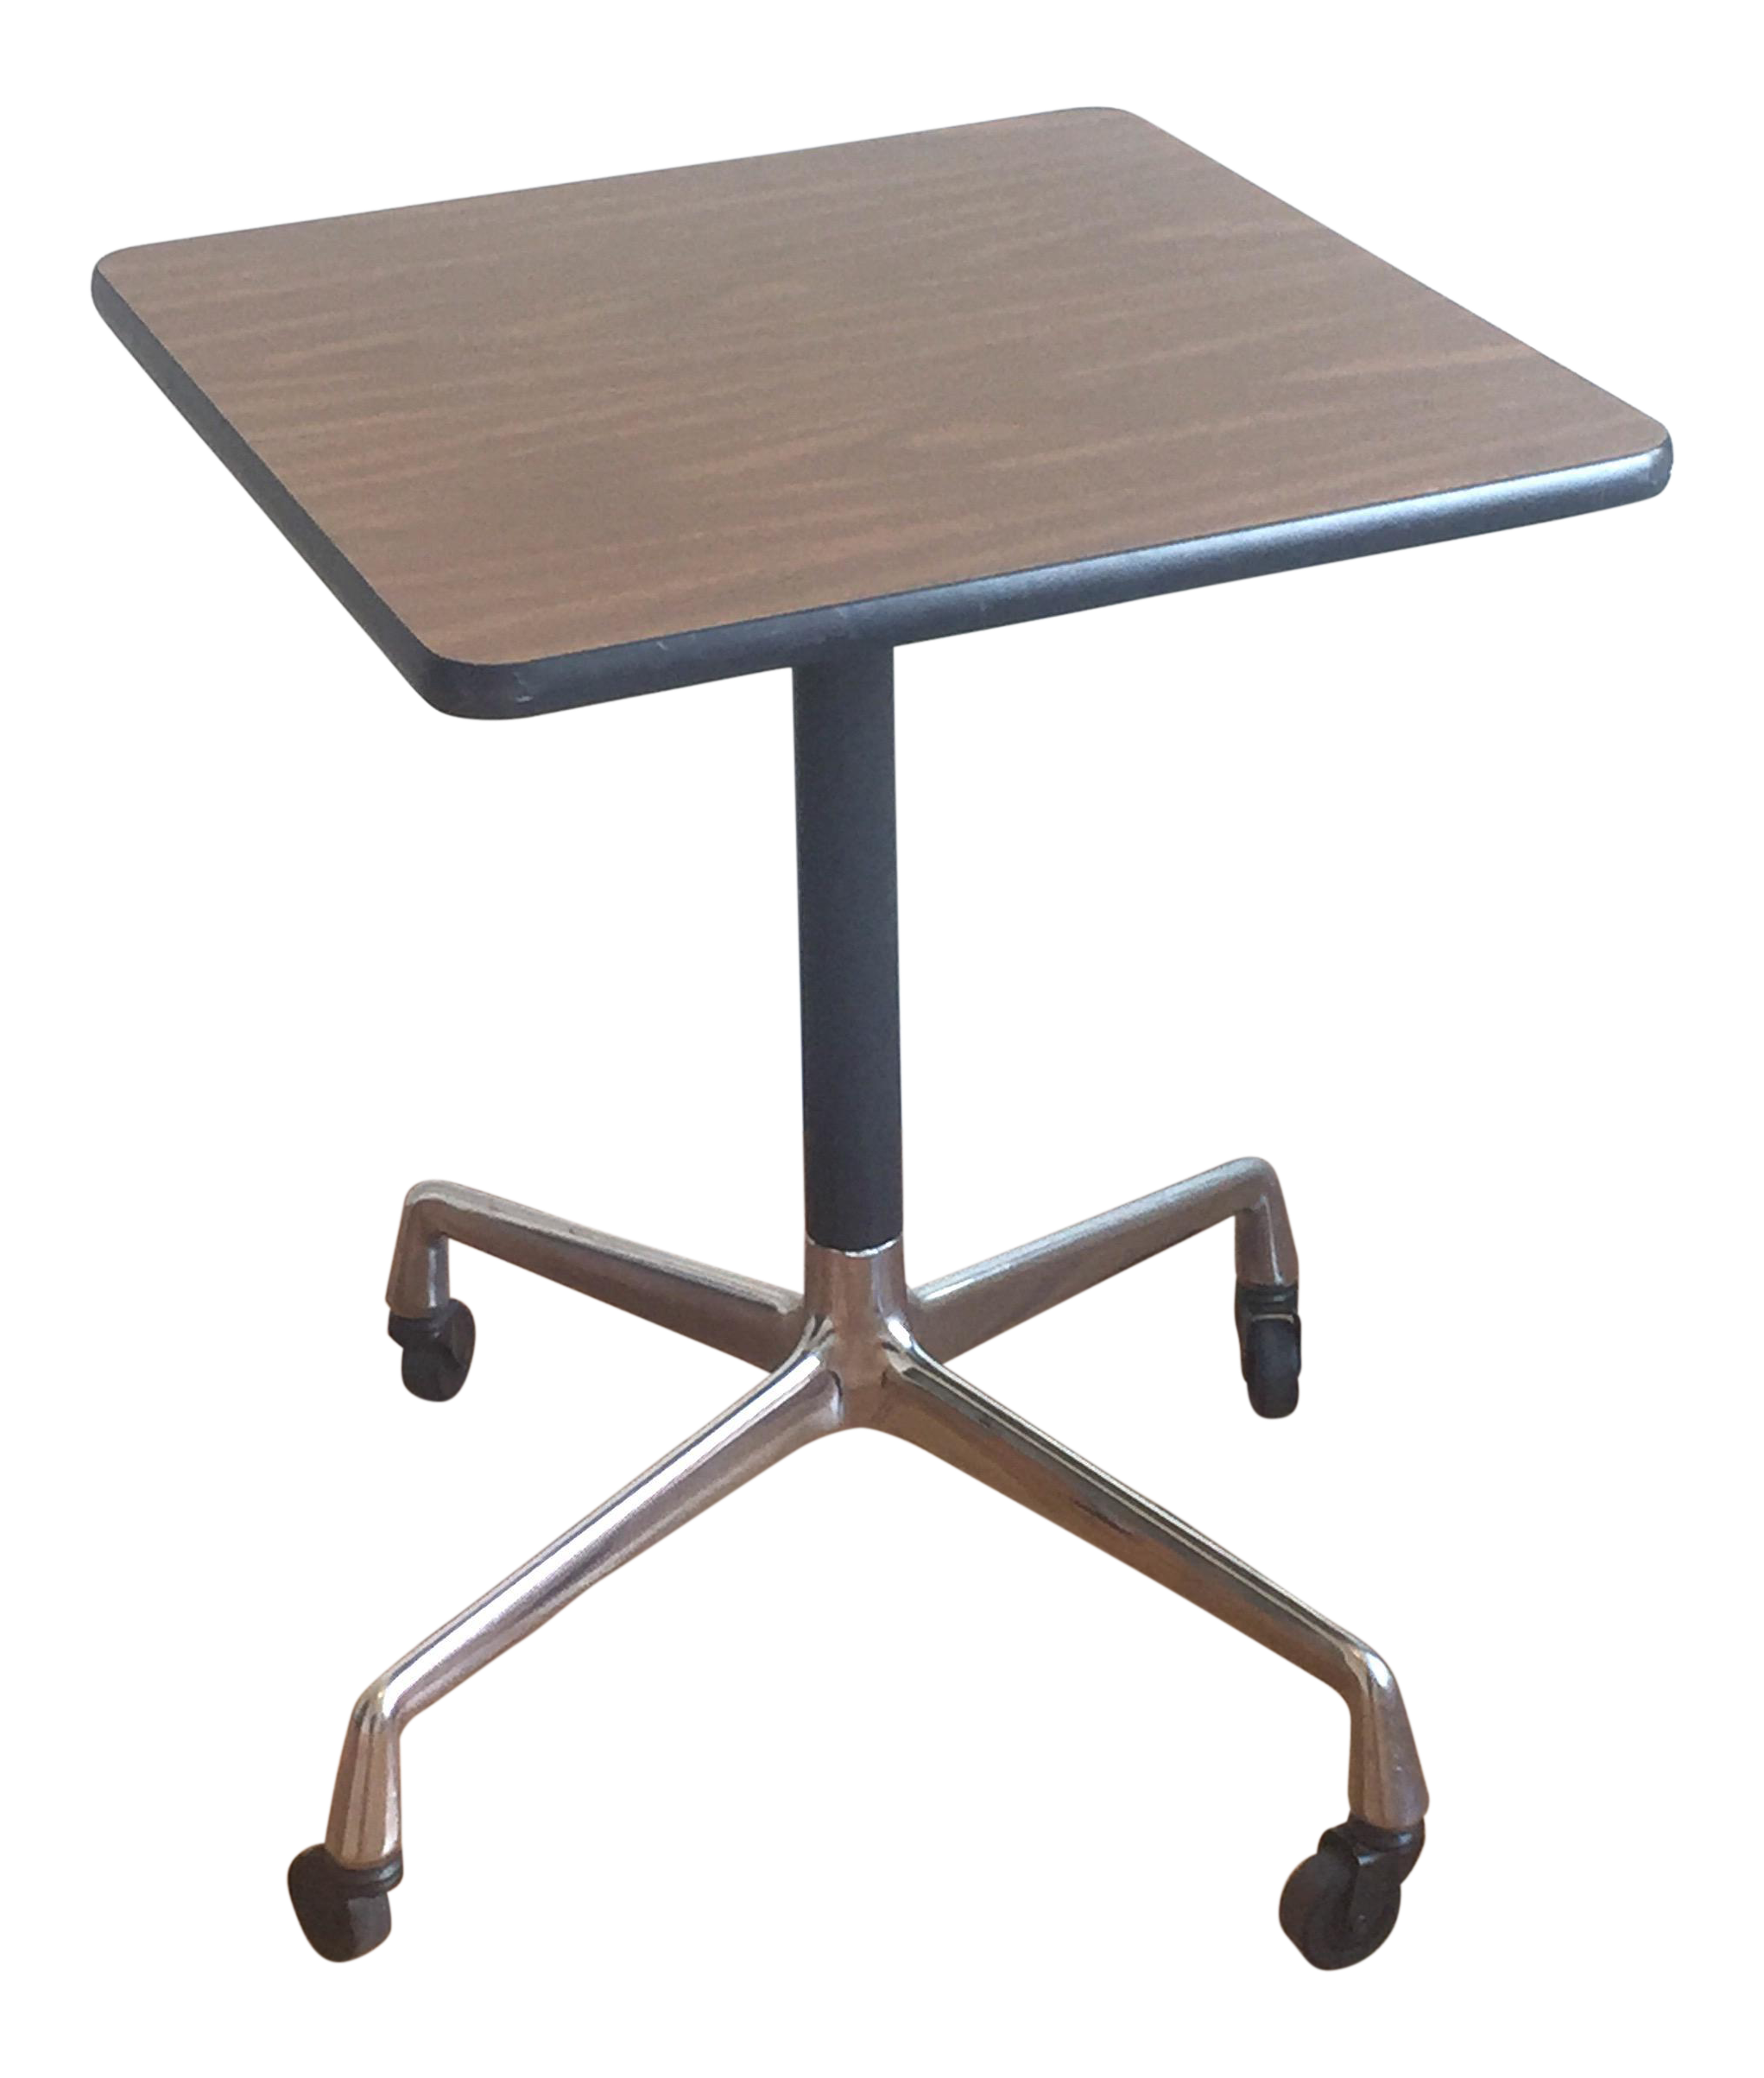 herman tandem decaso sling airport eames product superb for bench miller